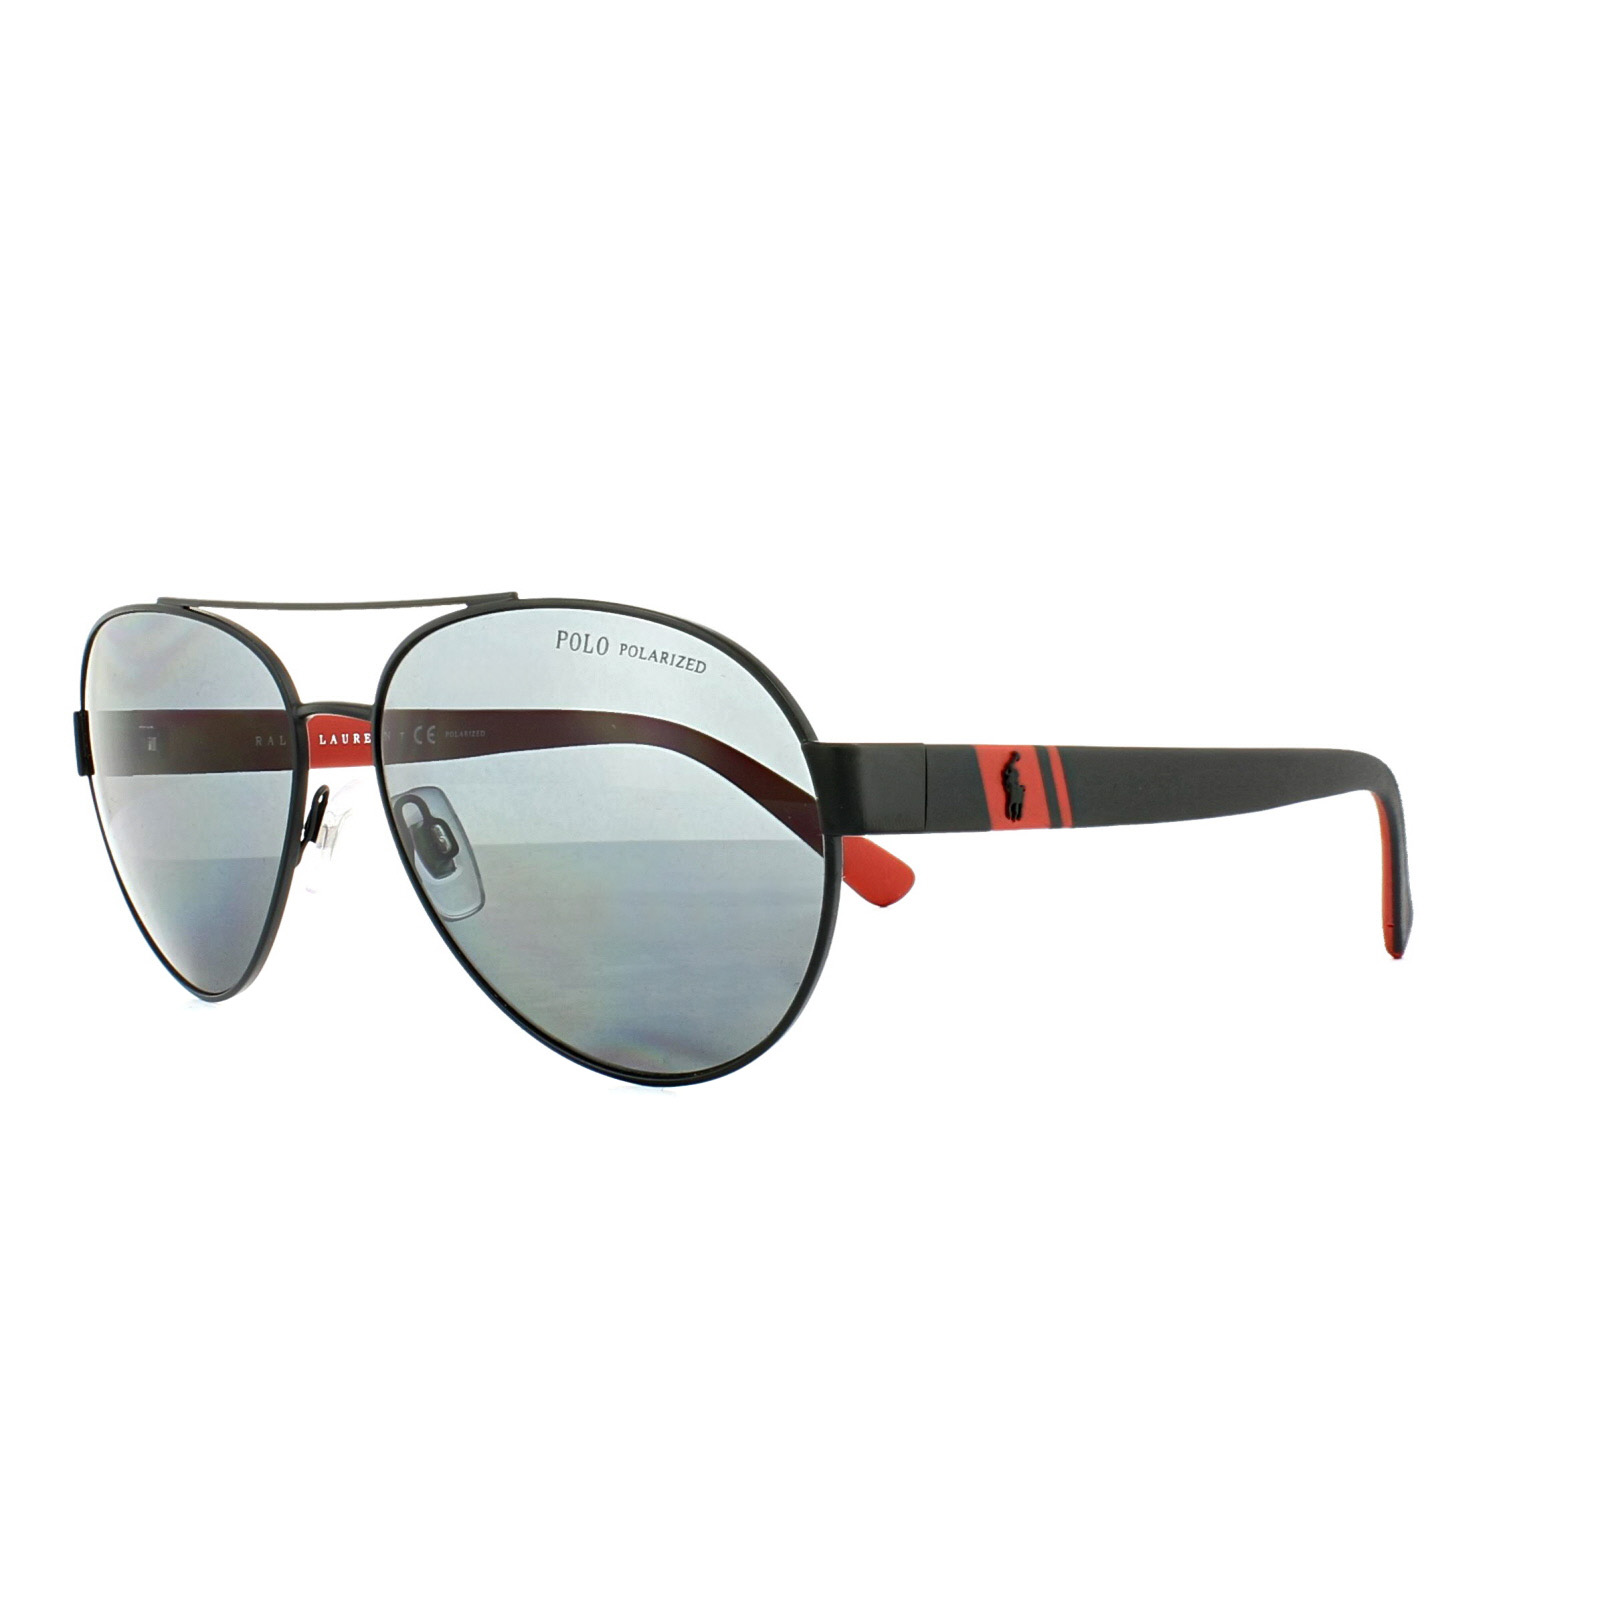 431495cc3e81 Cheap Polo Ralph Lauren 3098 Sunglasses - Discounted Sunglasses